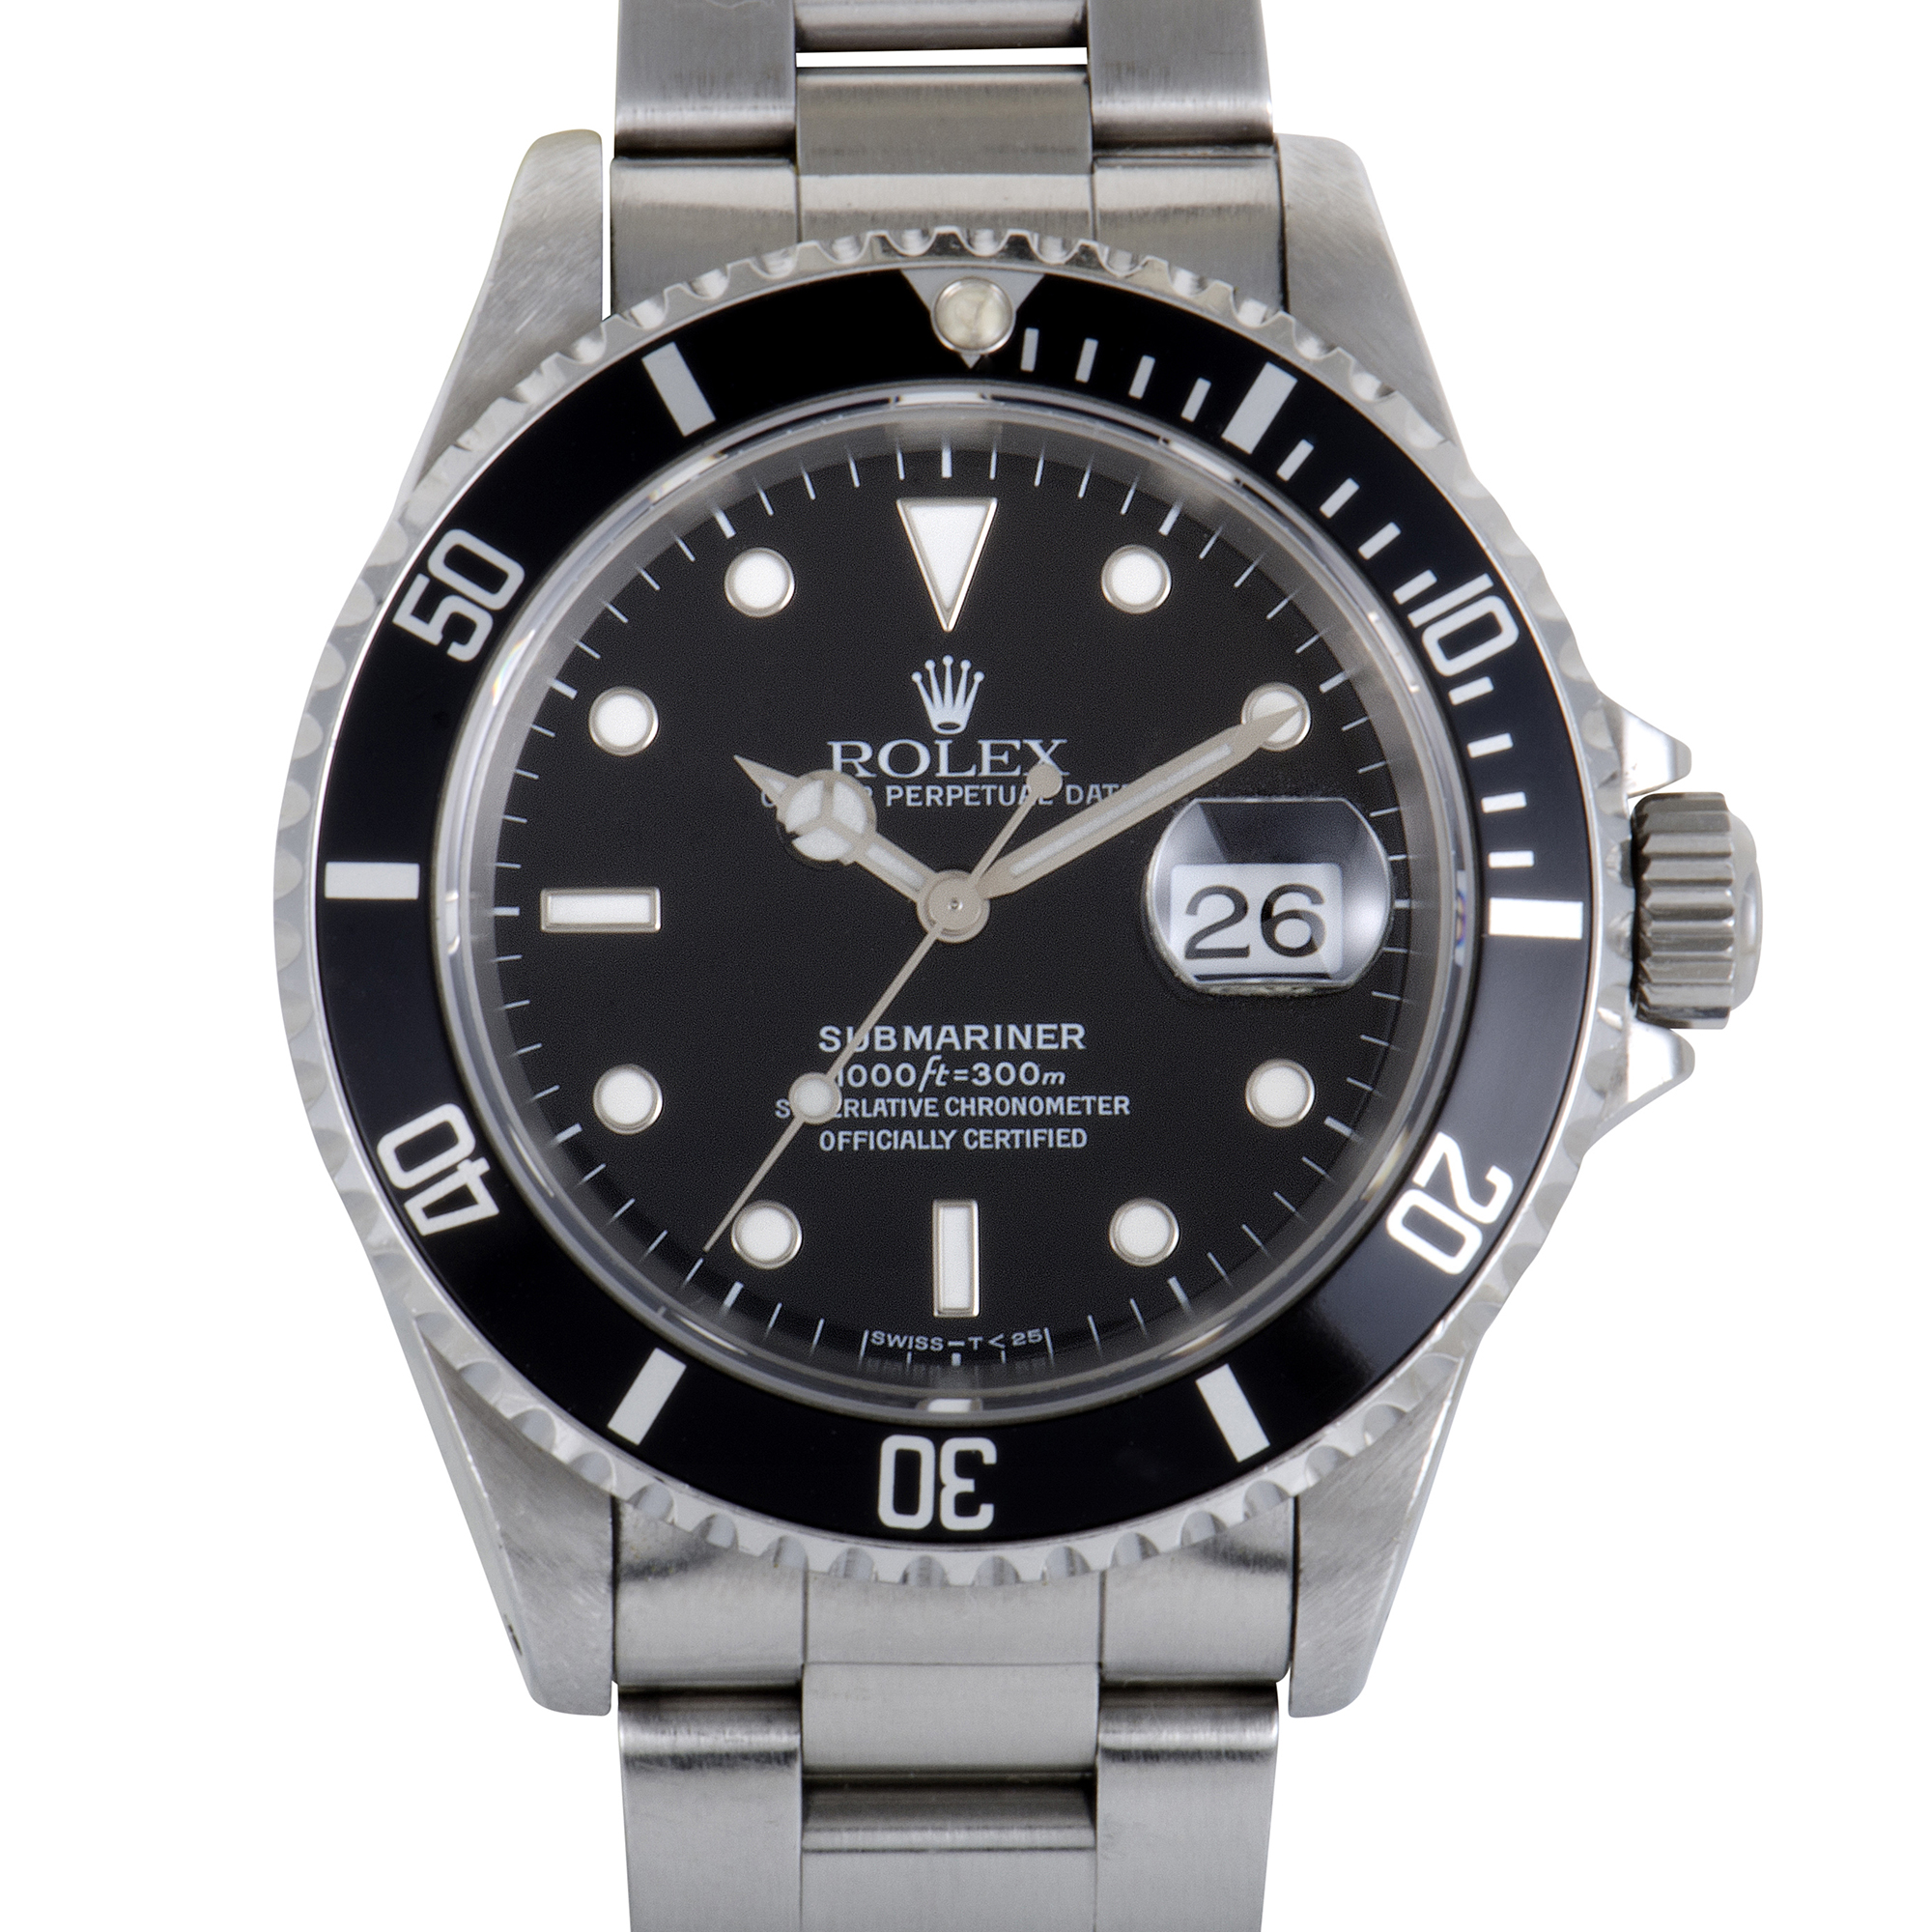 rolex oyster perpetual submariner date automatic watch. Black Bedroom Furniture Sets. Home Design Ideas